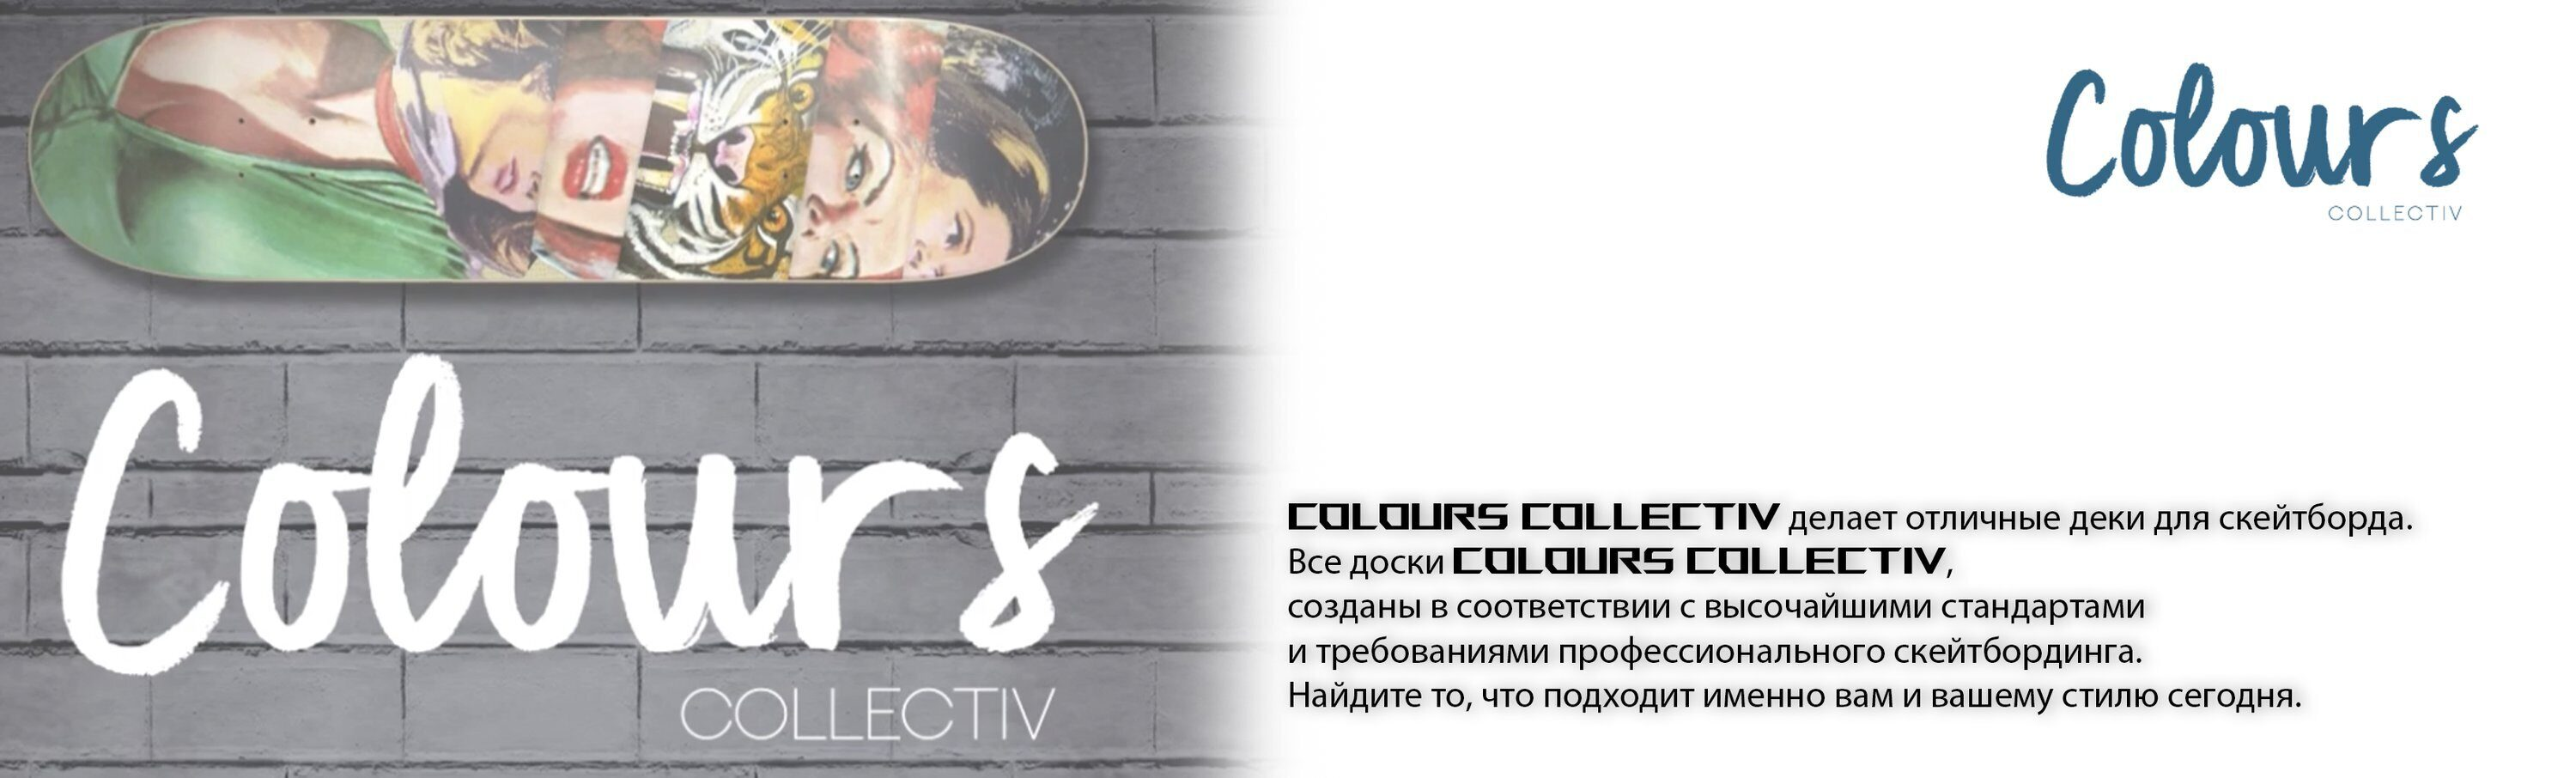 BRAND_Colours Collectiv